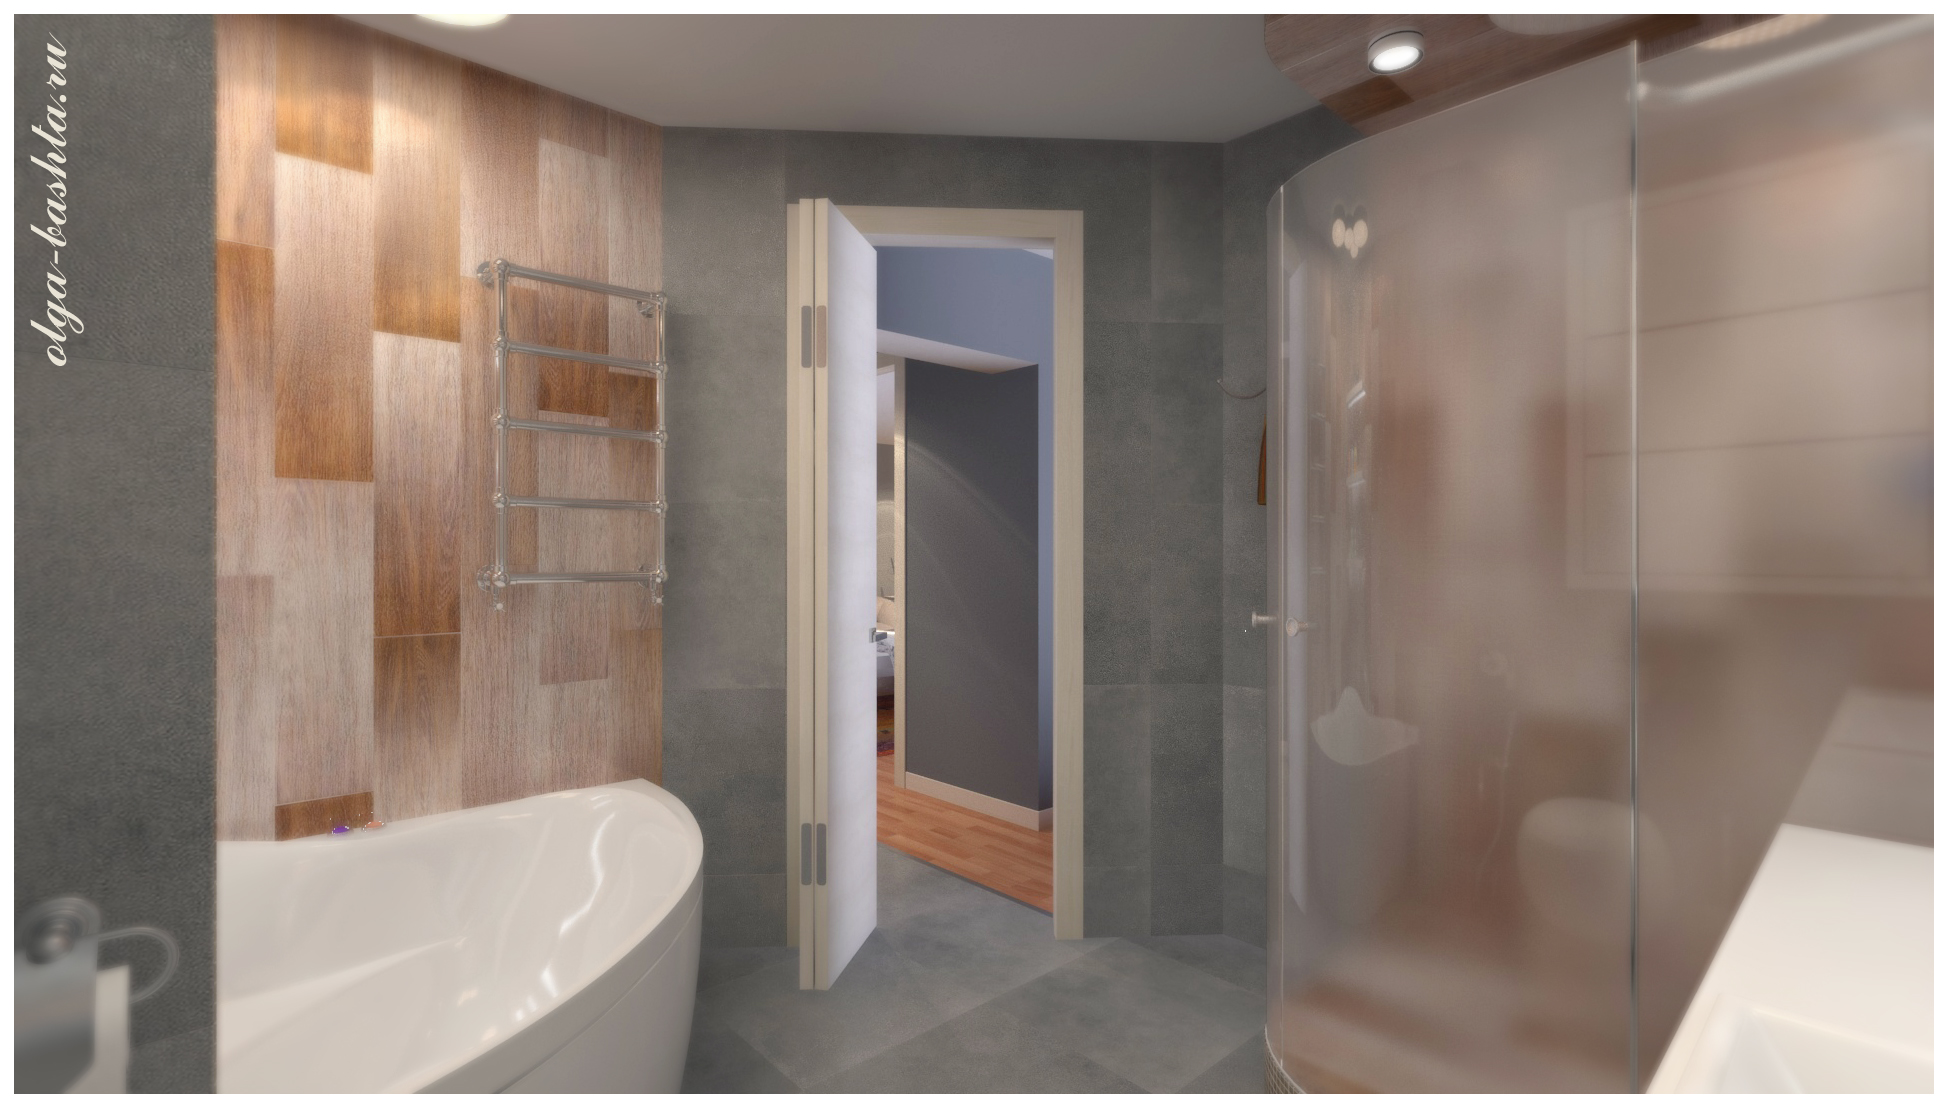 Bathroom area of 8 square meters. m in 3d max vray 3.0 image